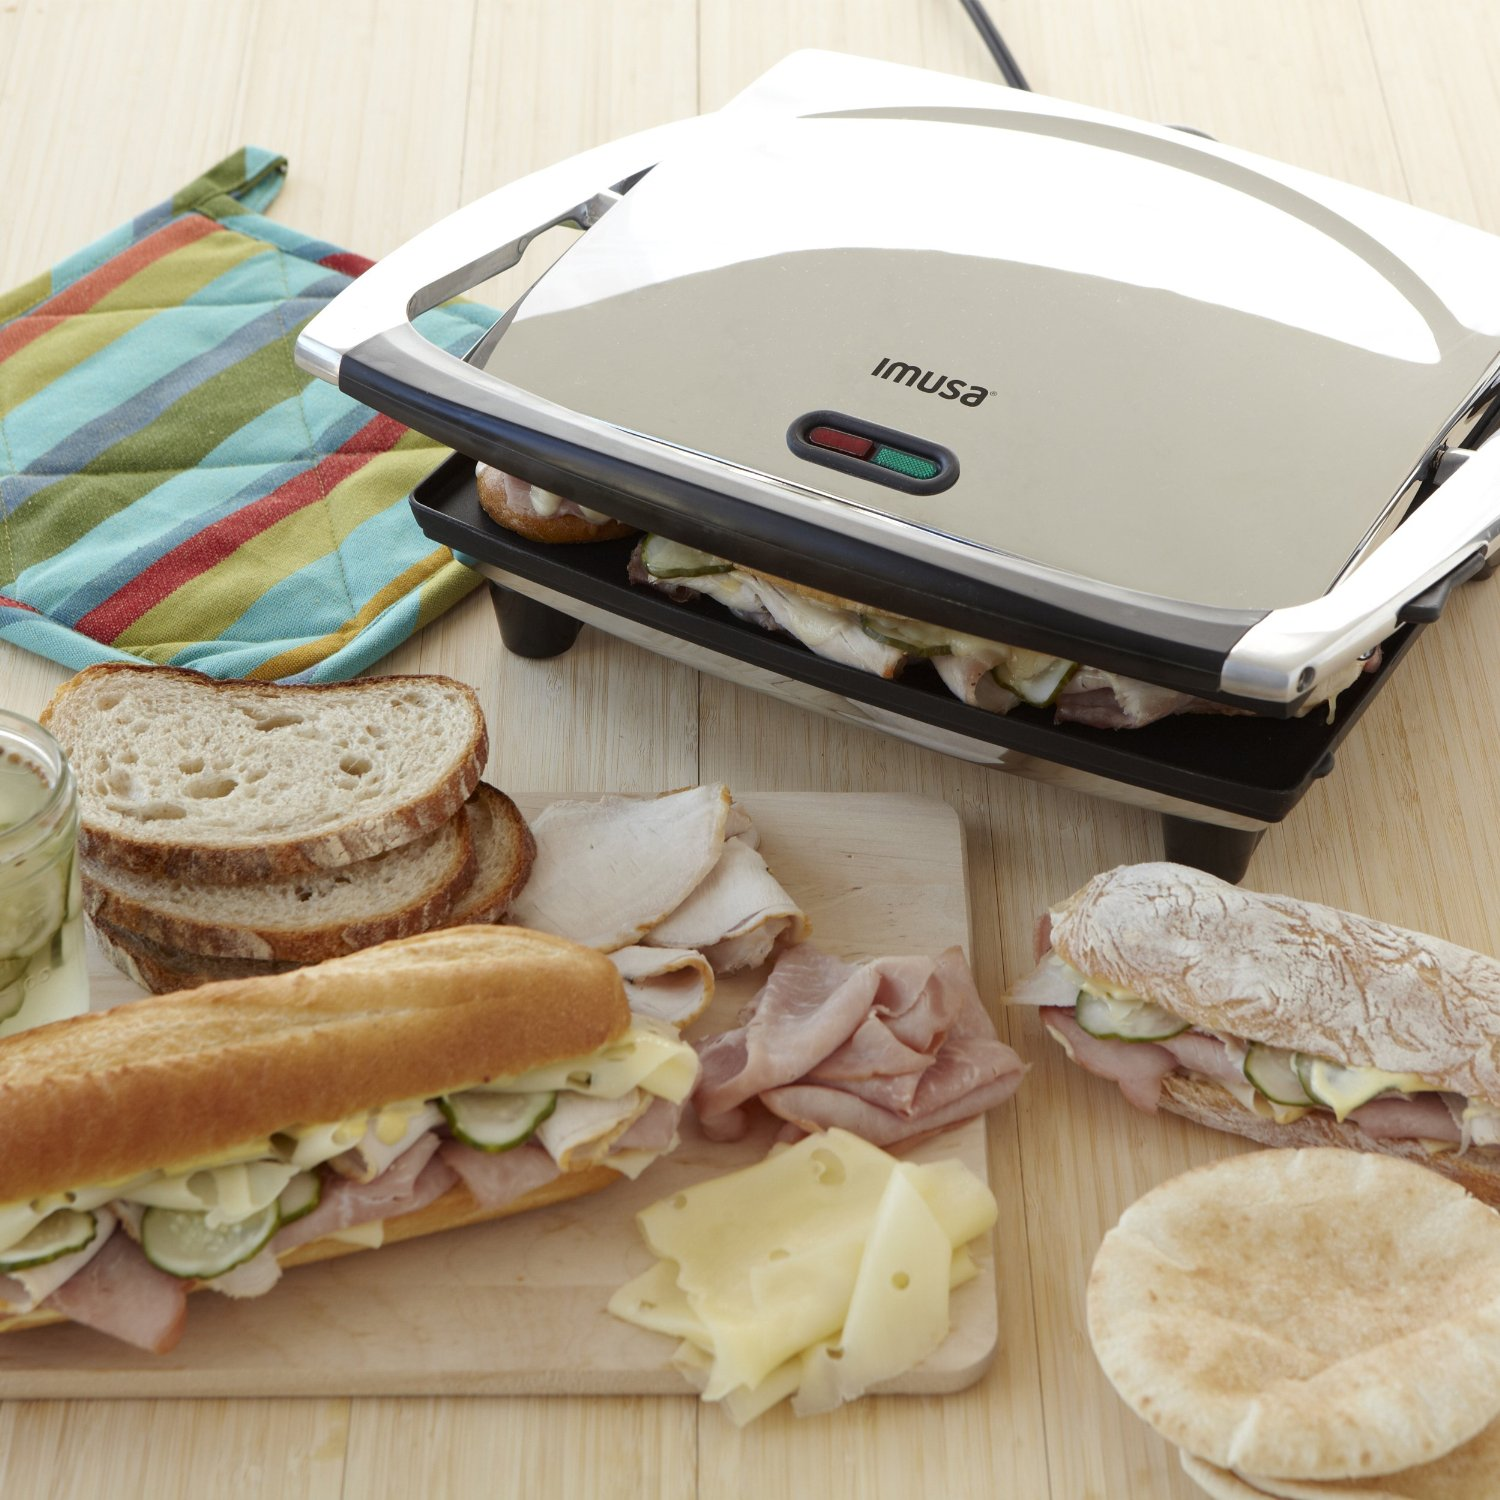 IMUSA Electric Panini and Sandwich Maker